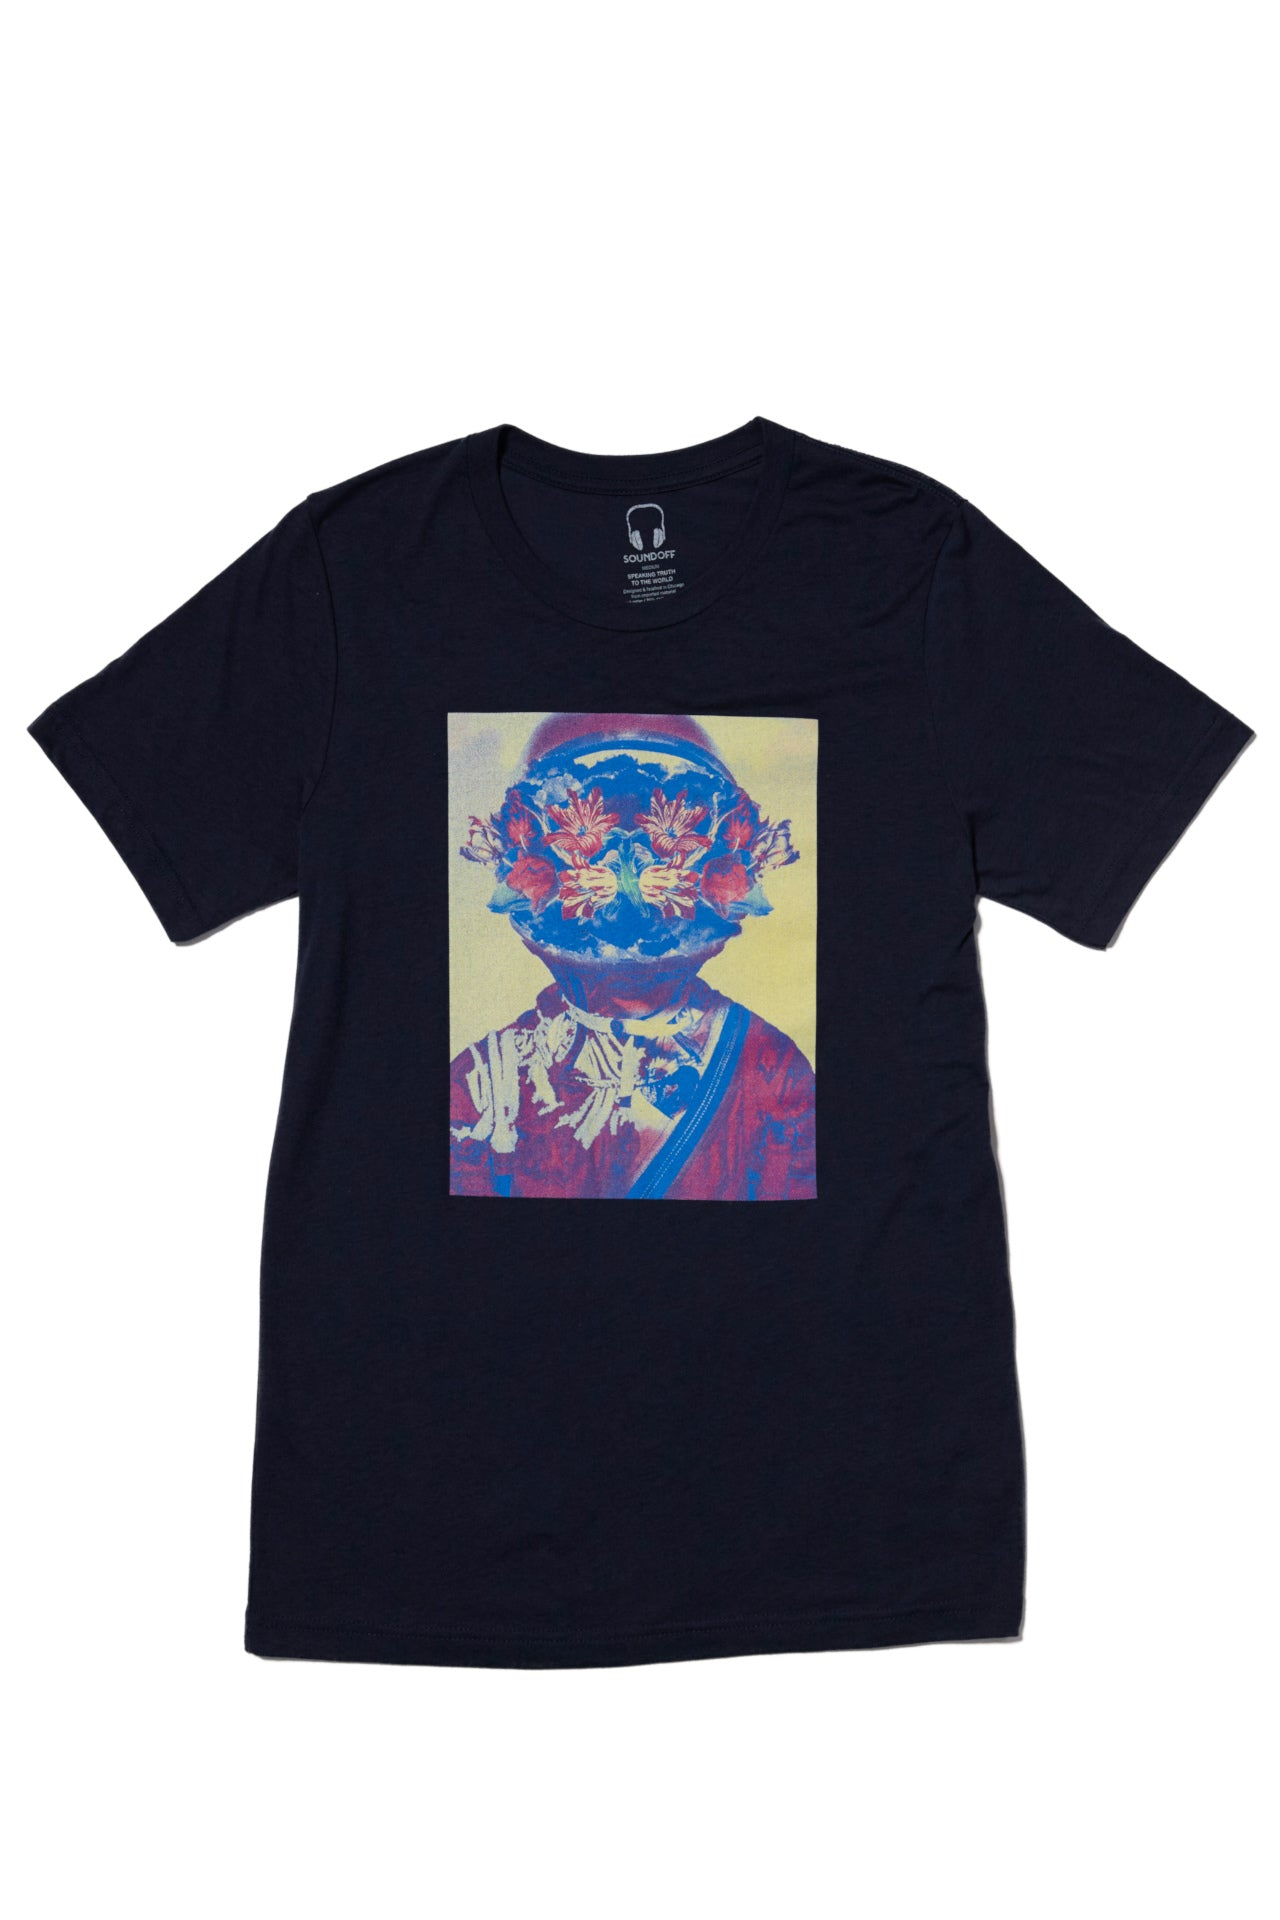 VISIONS OF GRANDEUR T-SHIRT